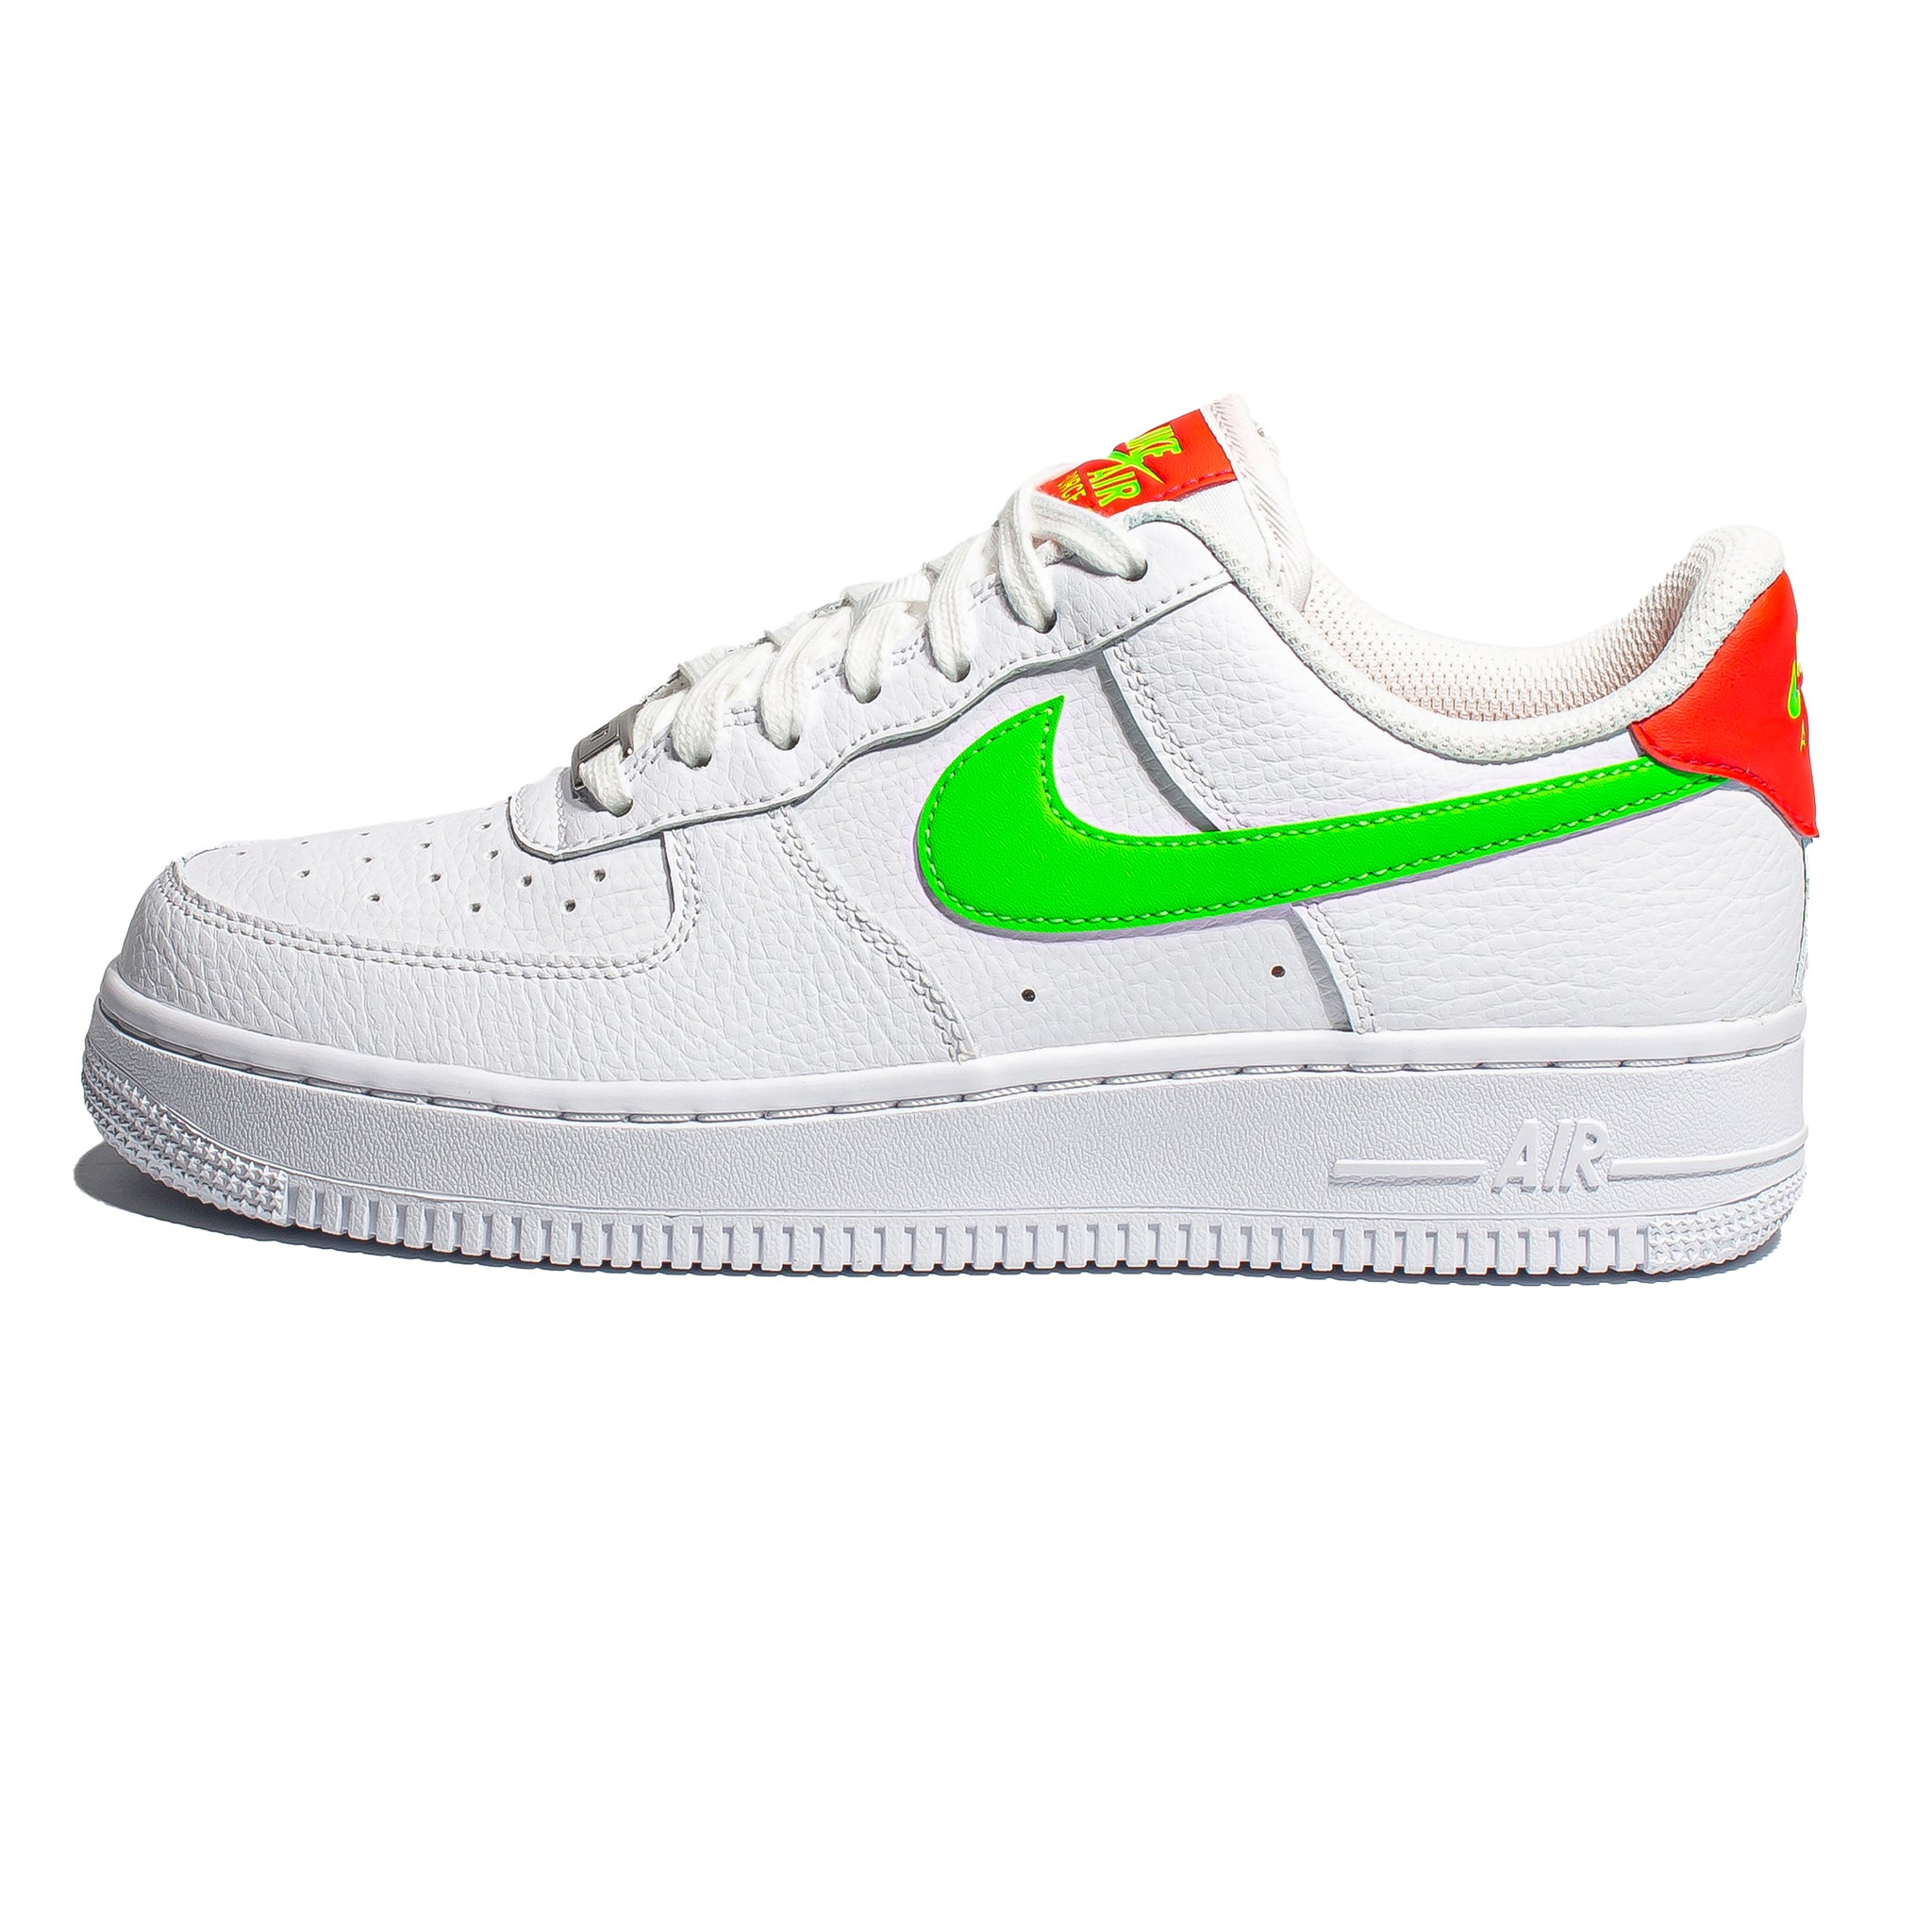 Nike Air Force 1 '07 'Watermelon'